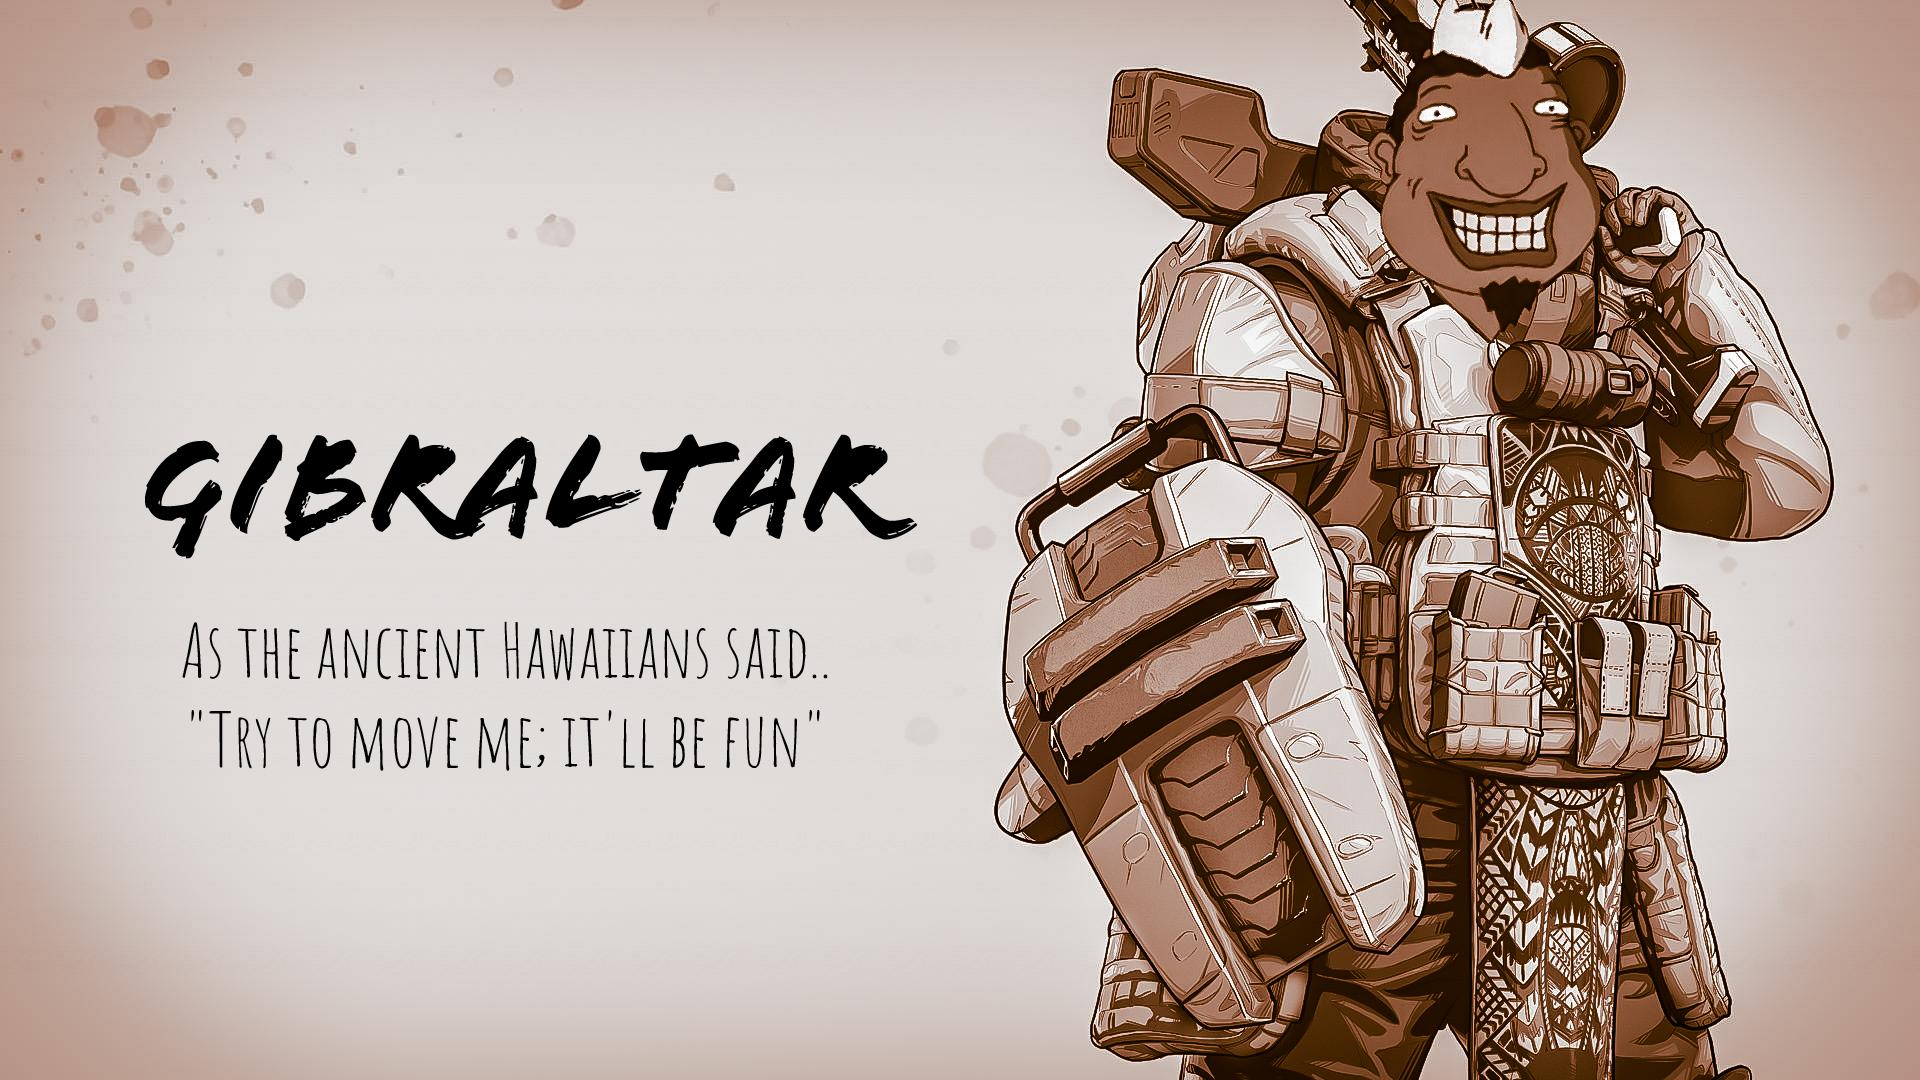 Let S Bookmark This Most Completed Gibraltar Apex Legends Guide